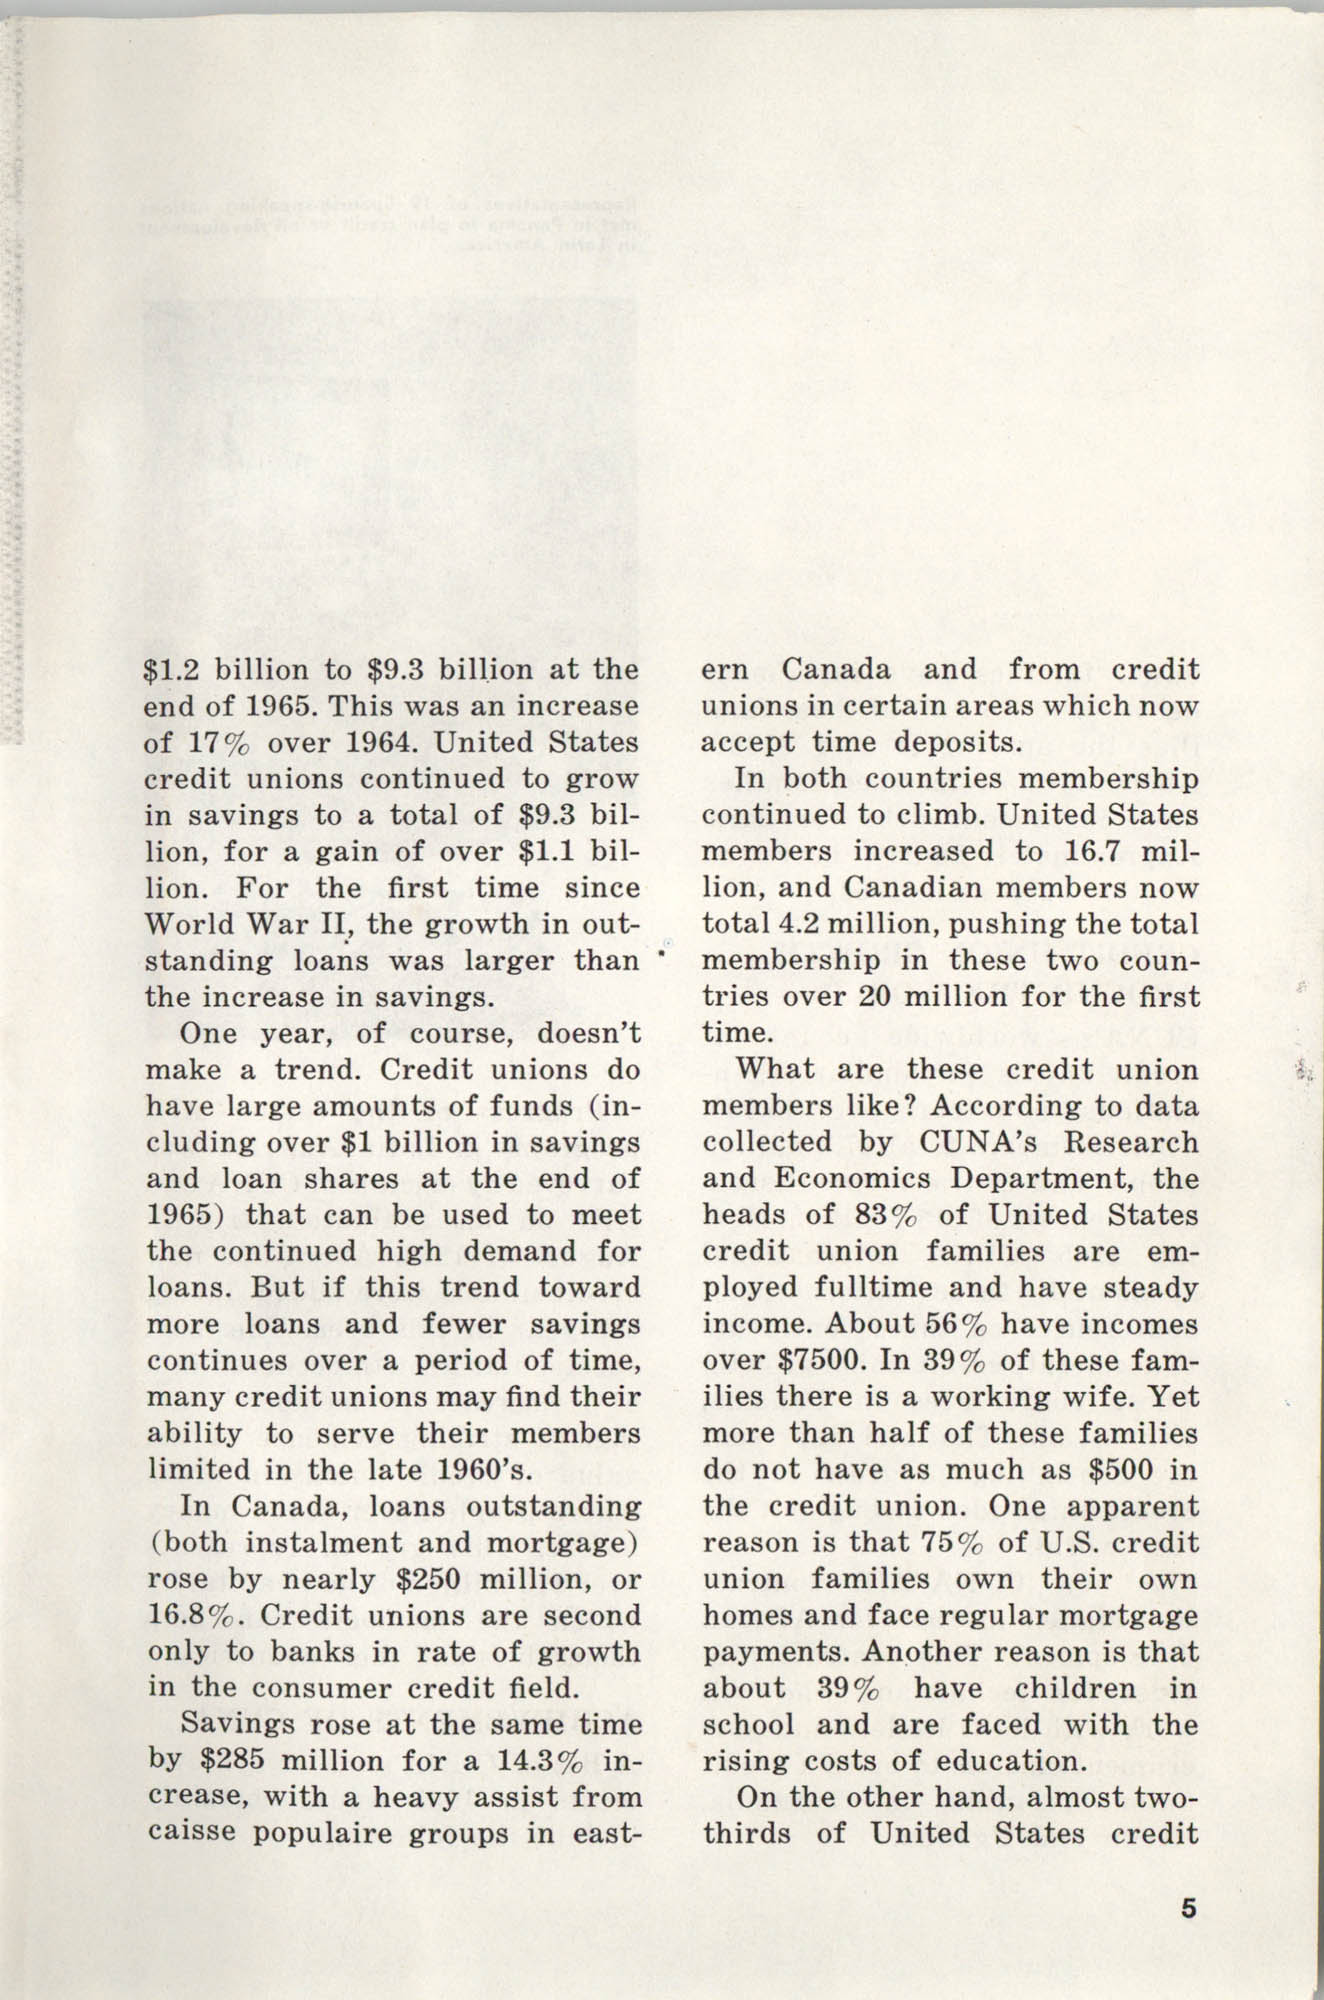 International Credit Union Yearbook, Page 5